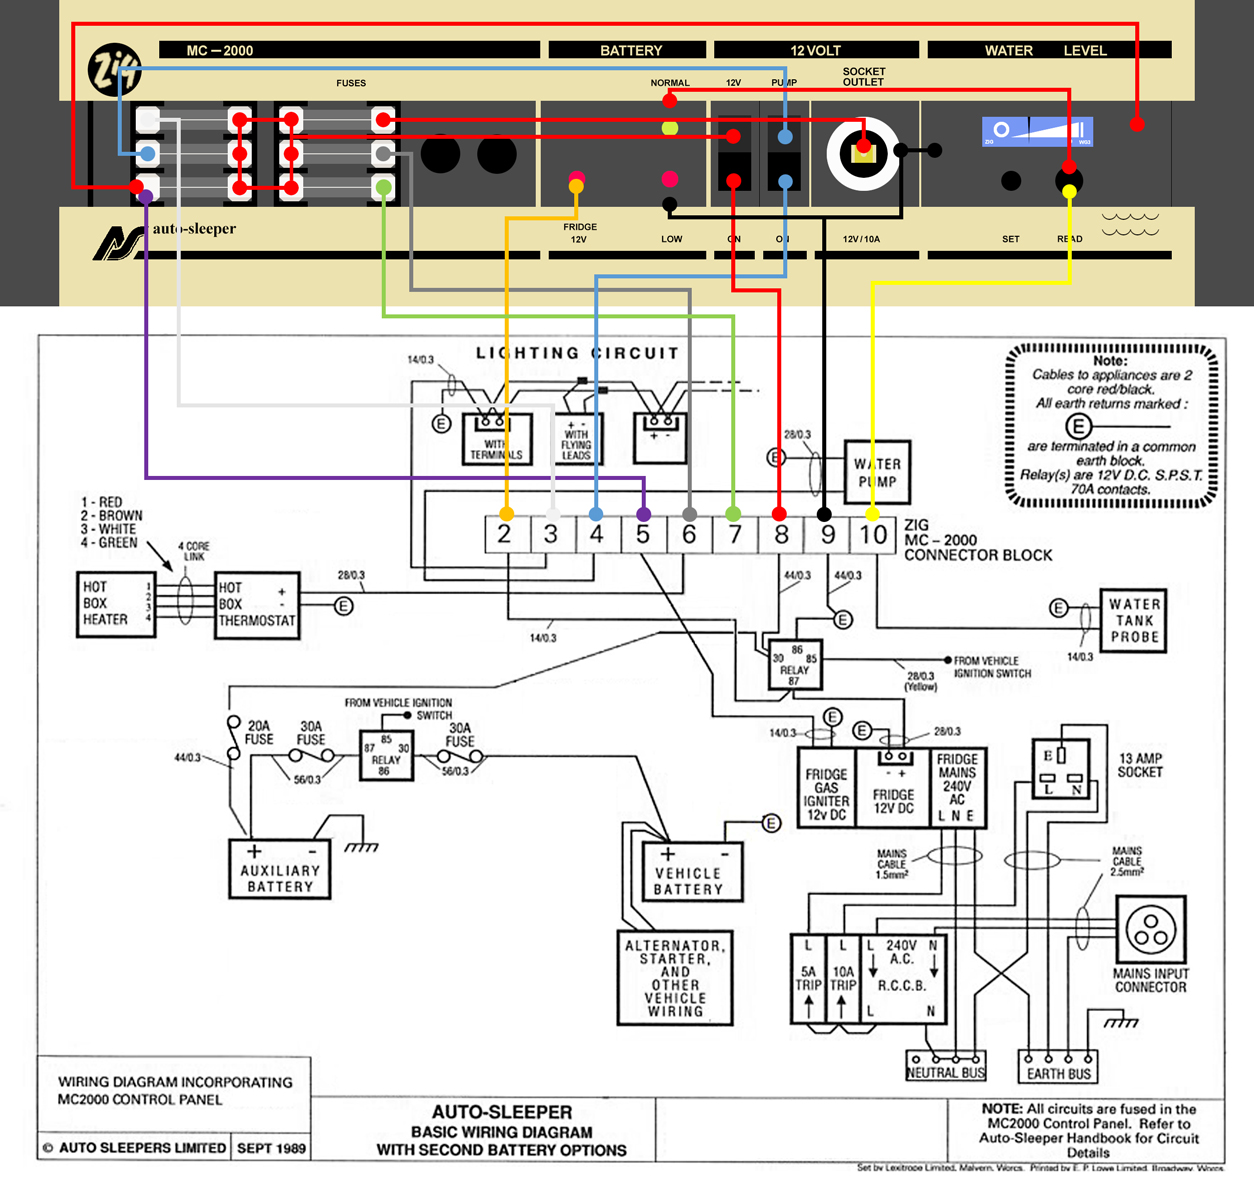 Water Heater Switch Wiring Diagram On 12 Volt Electric Hot Water